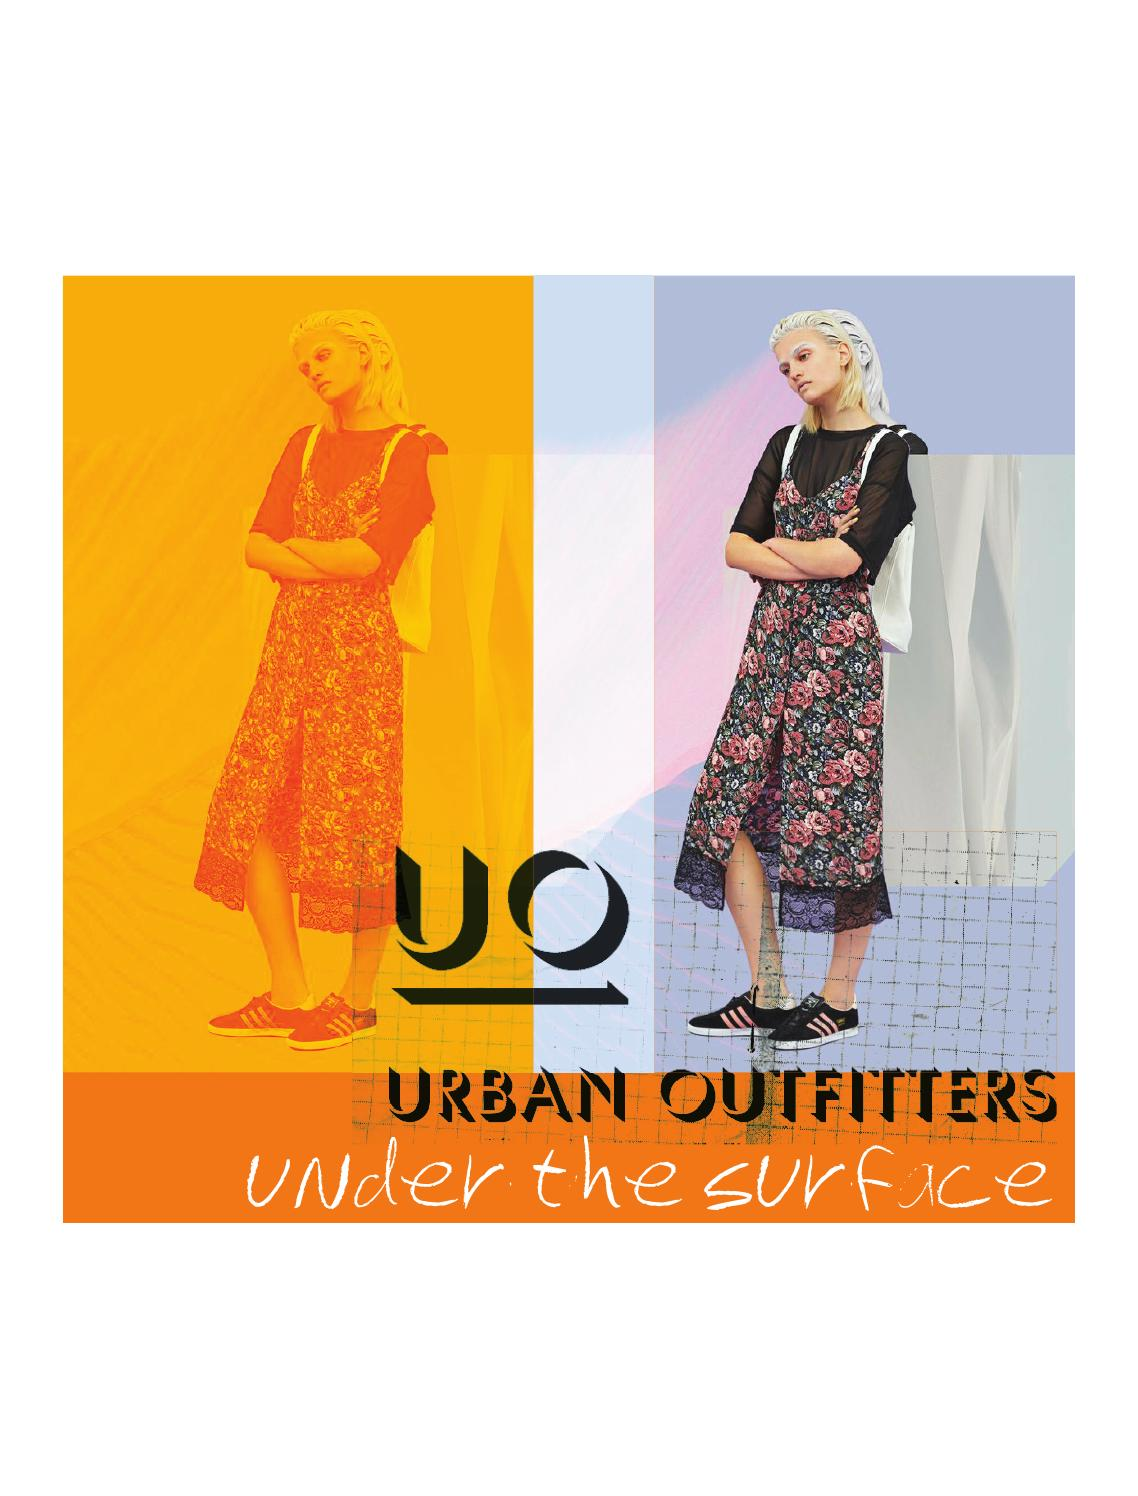 Urban Outfitters June 2010 Catalog pics